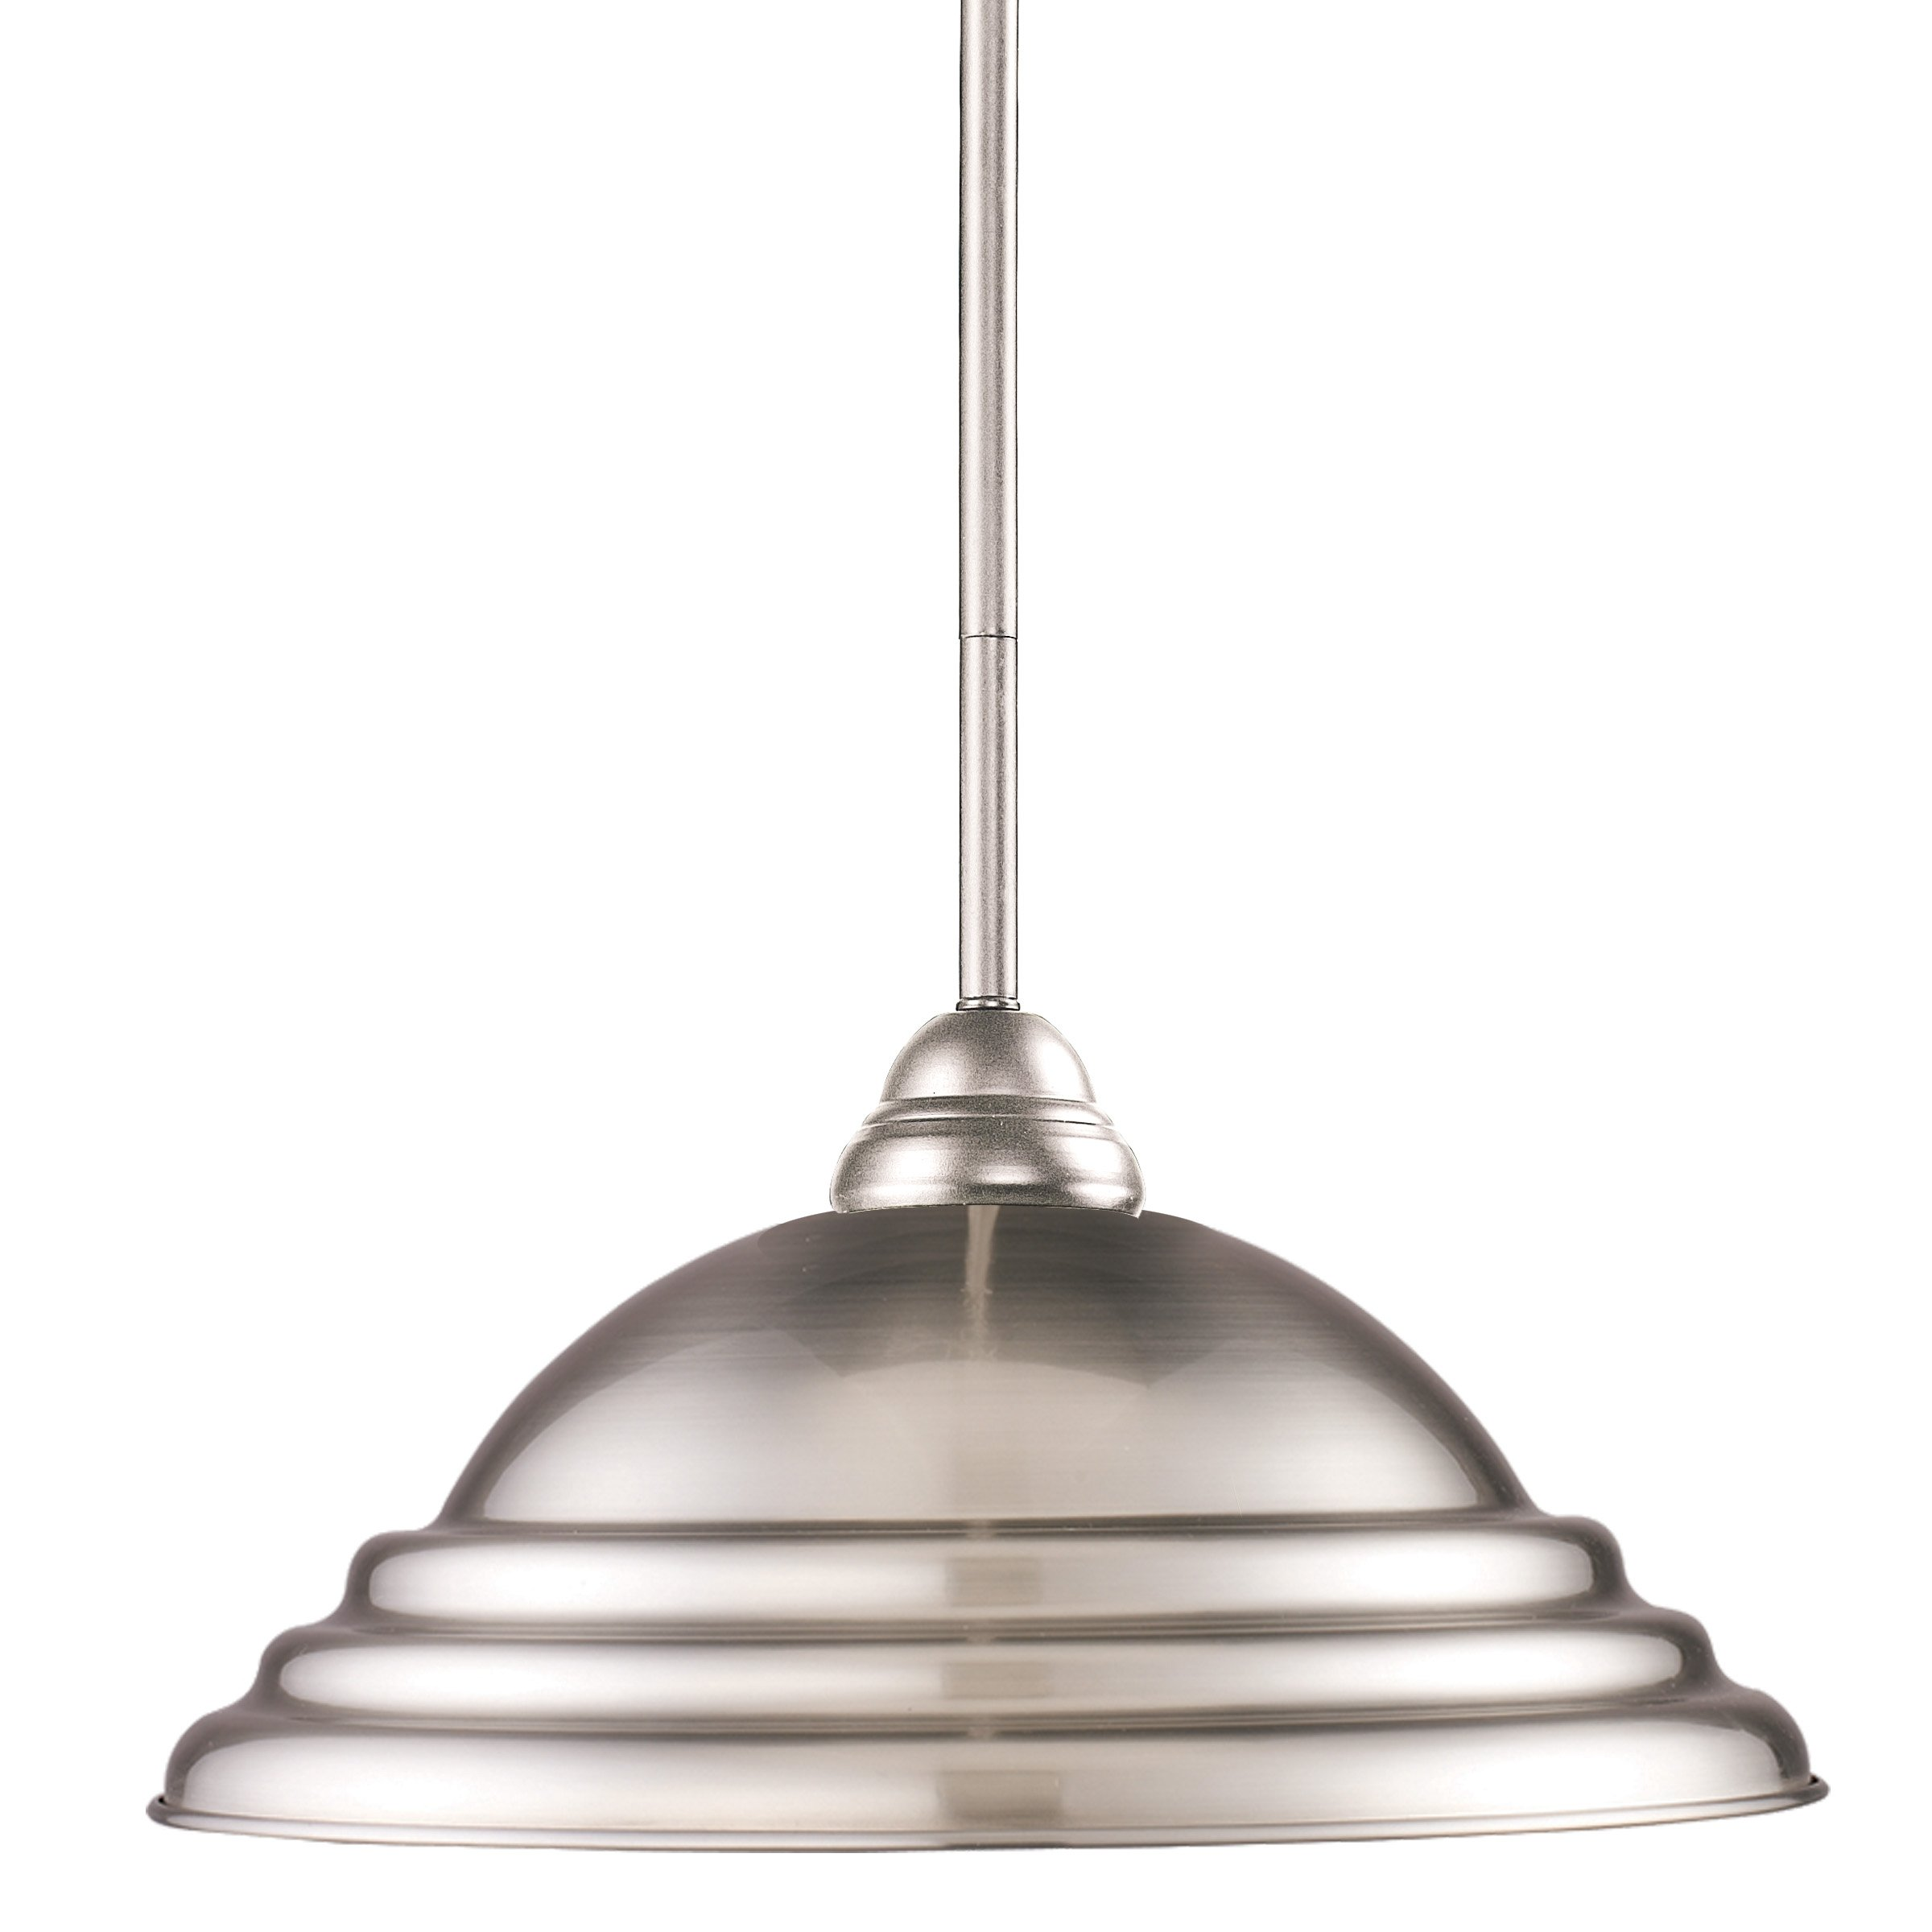 Z-Lite 2110MP-BN-SPT Riviera 1 Light Pendant, Steel Frame, Brushed Nickel Finish and Pewter Shade of Metal Material